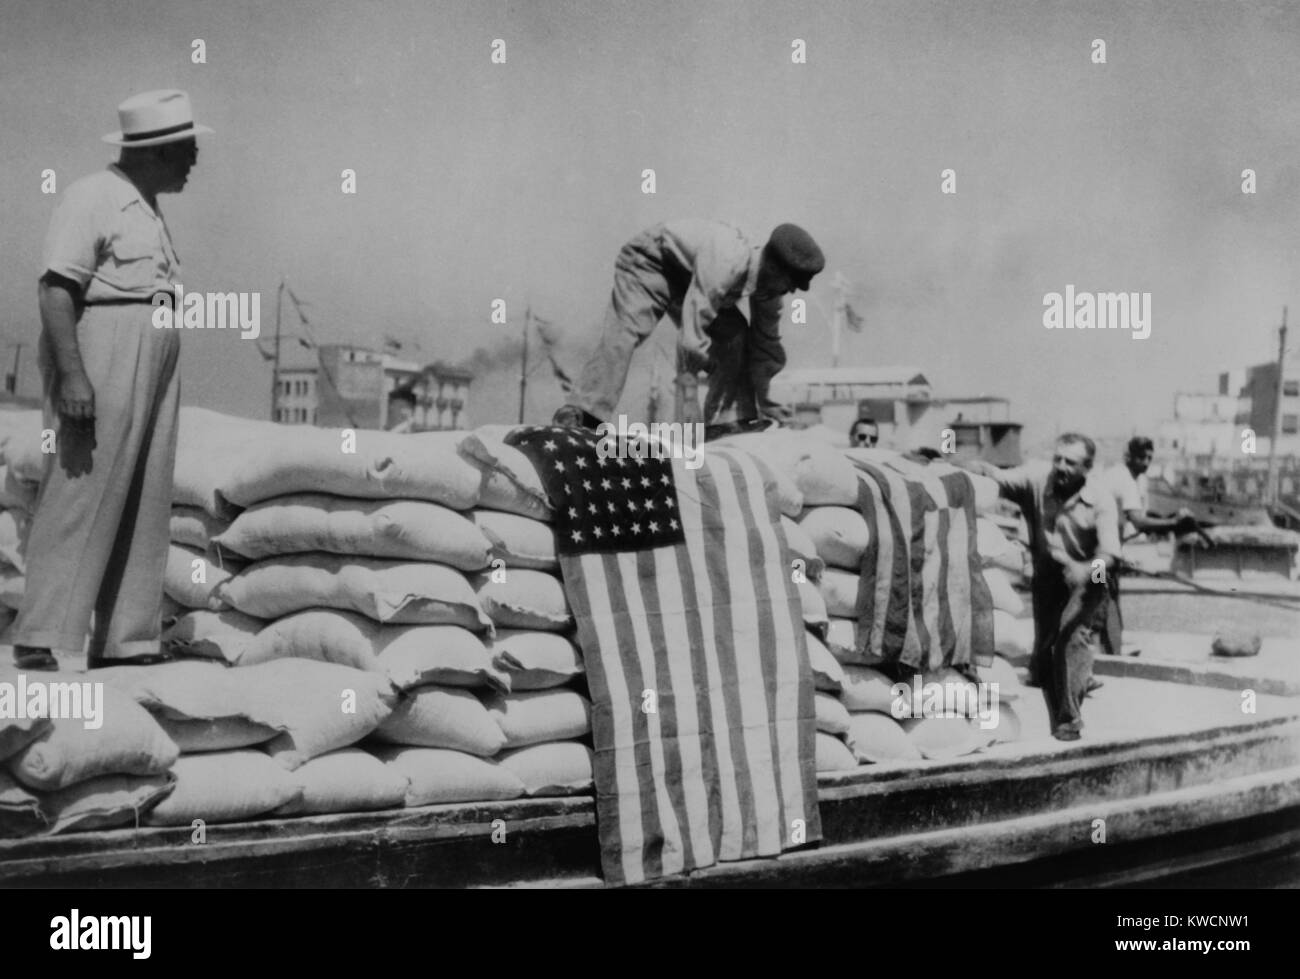 Sacks of flour, the first relief supplies from the United States, being unloaded in the port of Piraeus. American - Stock Image